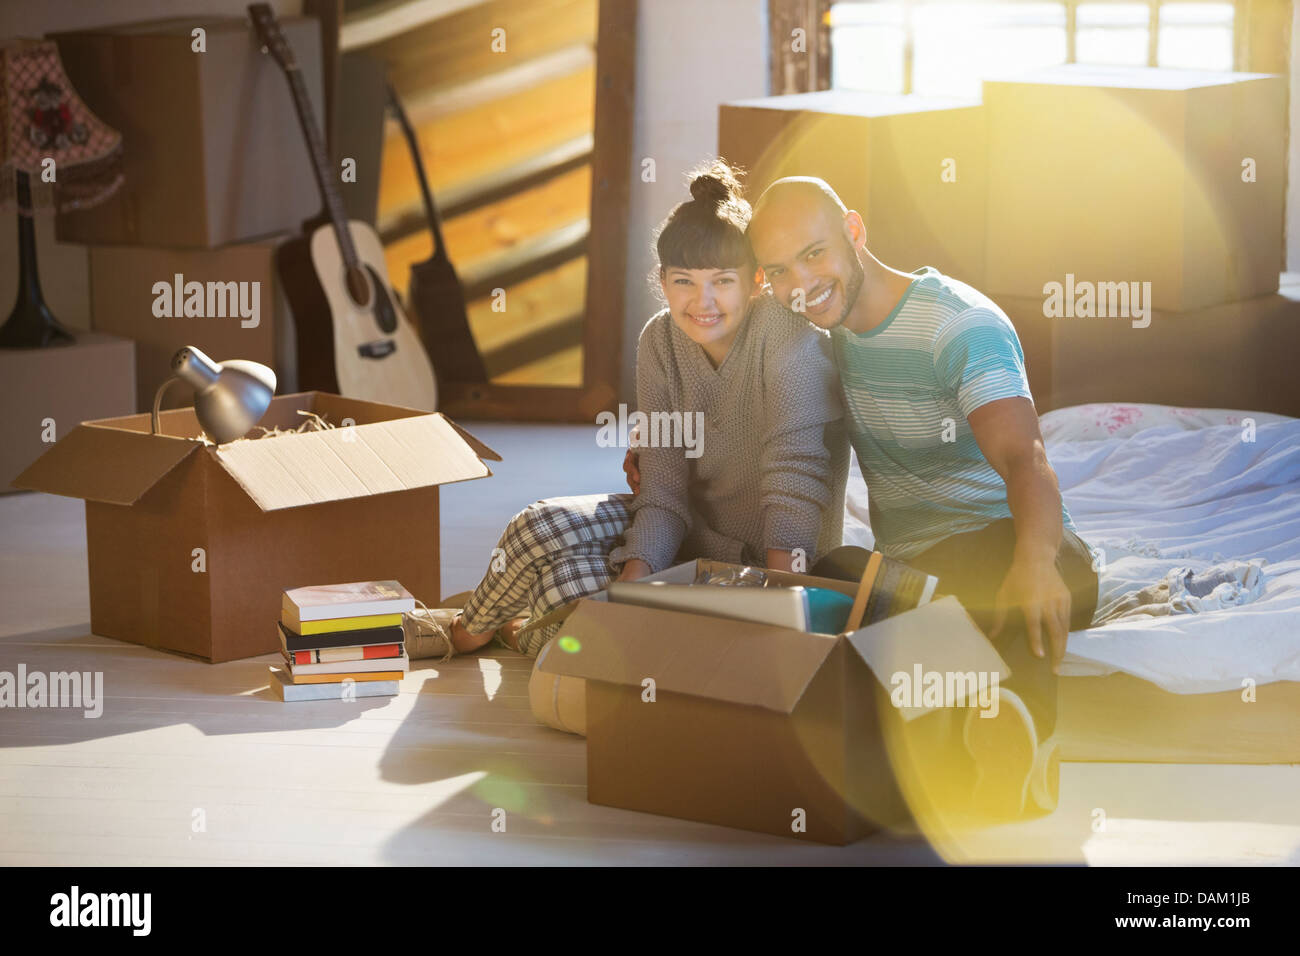 Couple unpacking boxes in attic - Stock Image